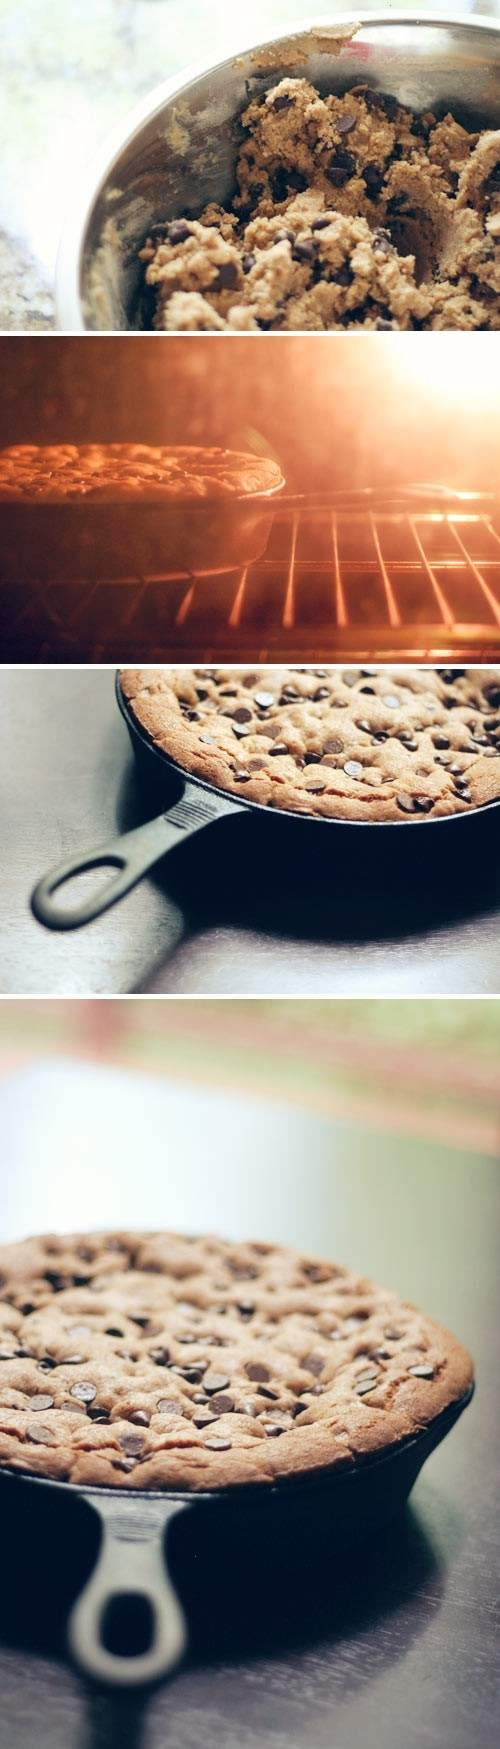 chocolate chip skillet cookie | Recipes to Try | Pinterest